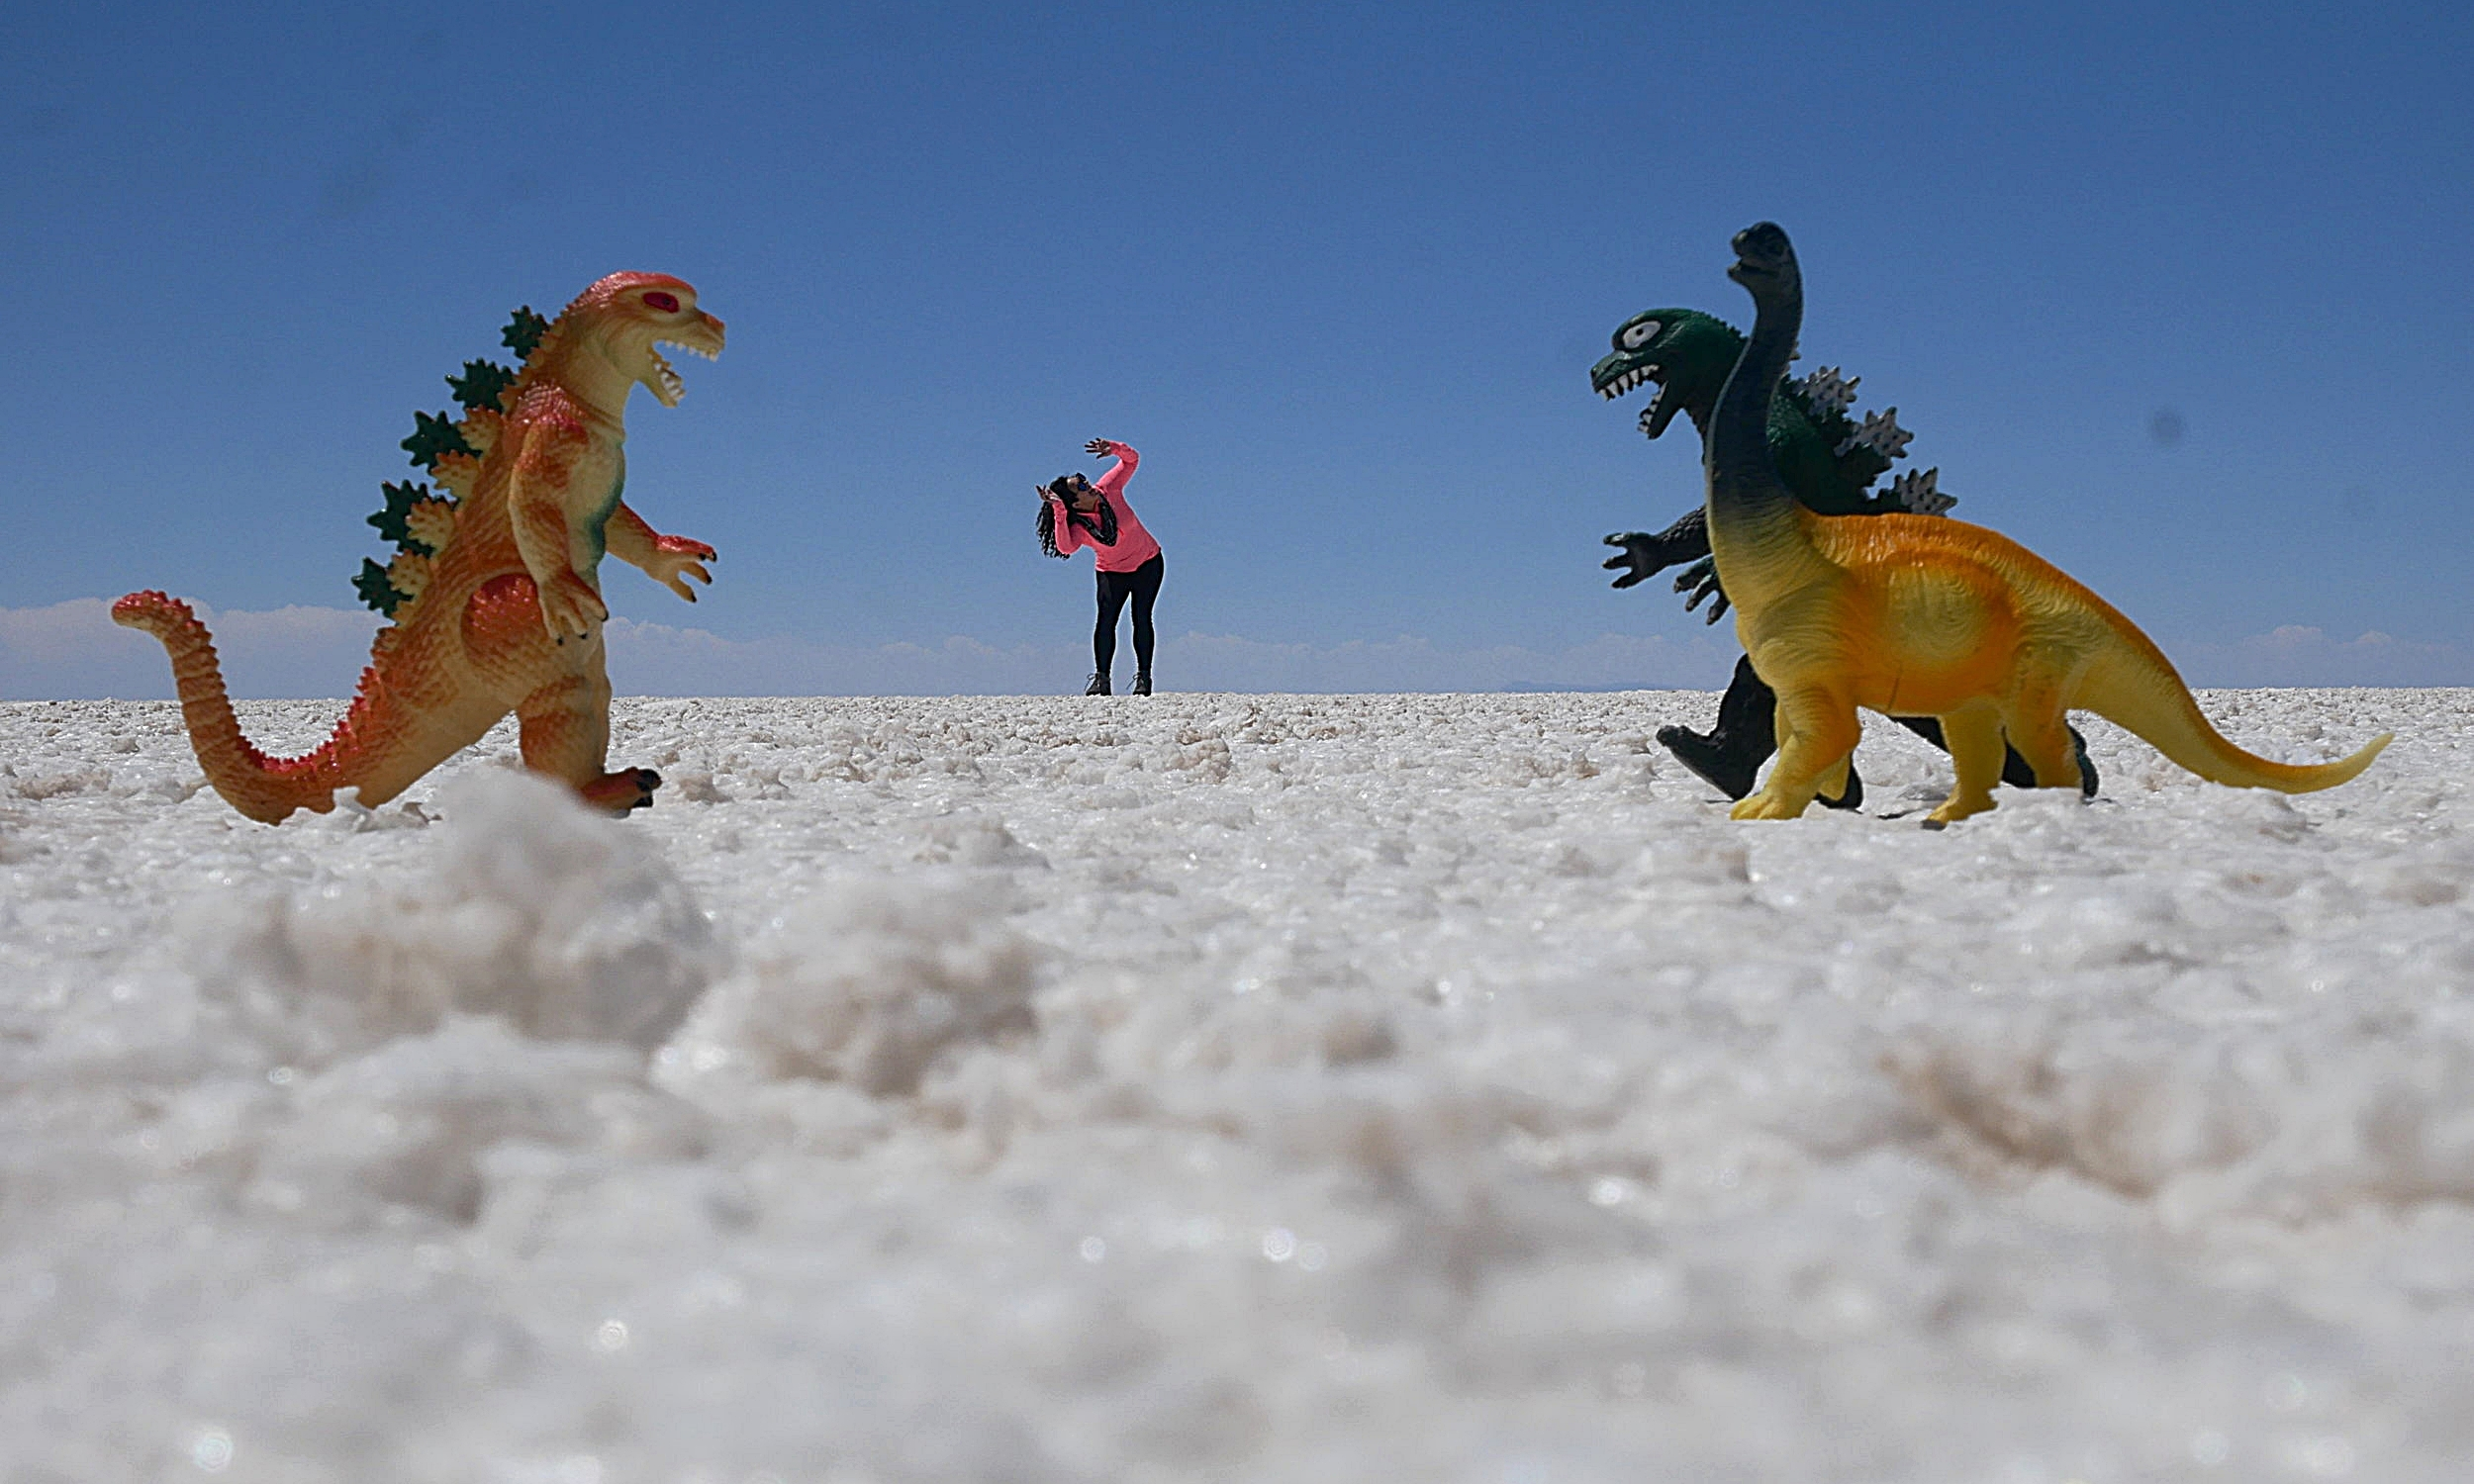 Getting attacked by dinosaurs (or just playing with perspective in the Salt Flats)